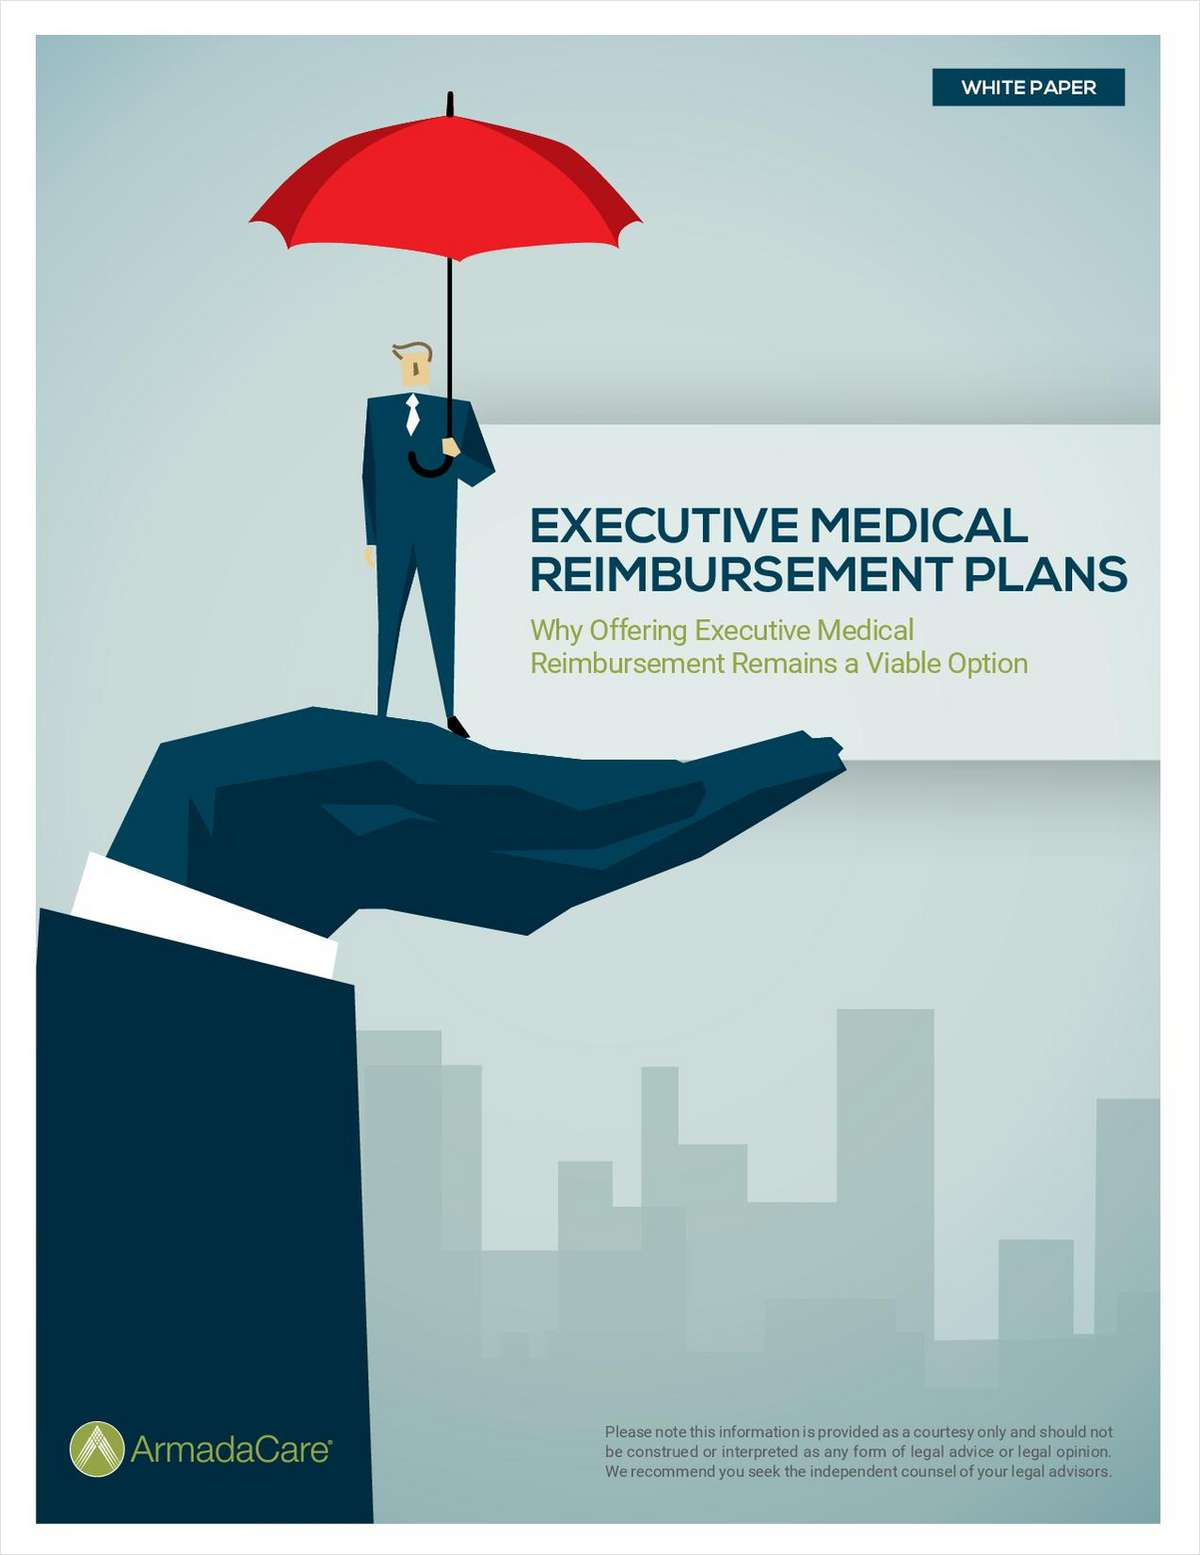 Executive Health Plans Still Remain a Viable Option -- Here's Why